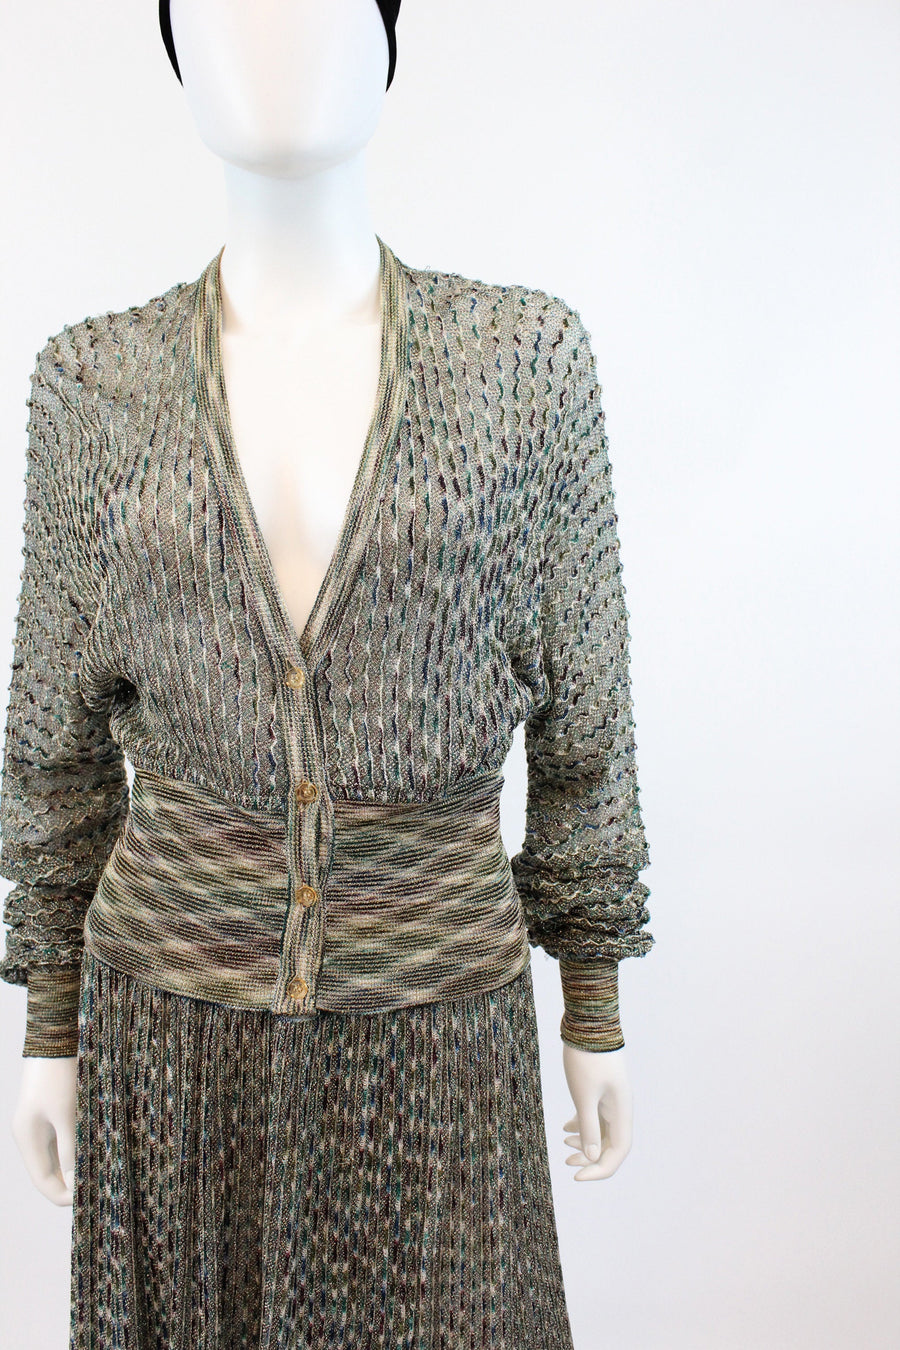 1980s Missoni knit dress small medium | vintage lurex sweater and skirt two piece | new in